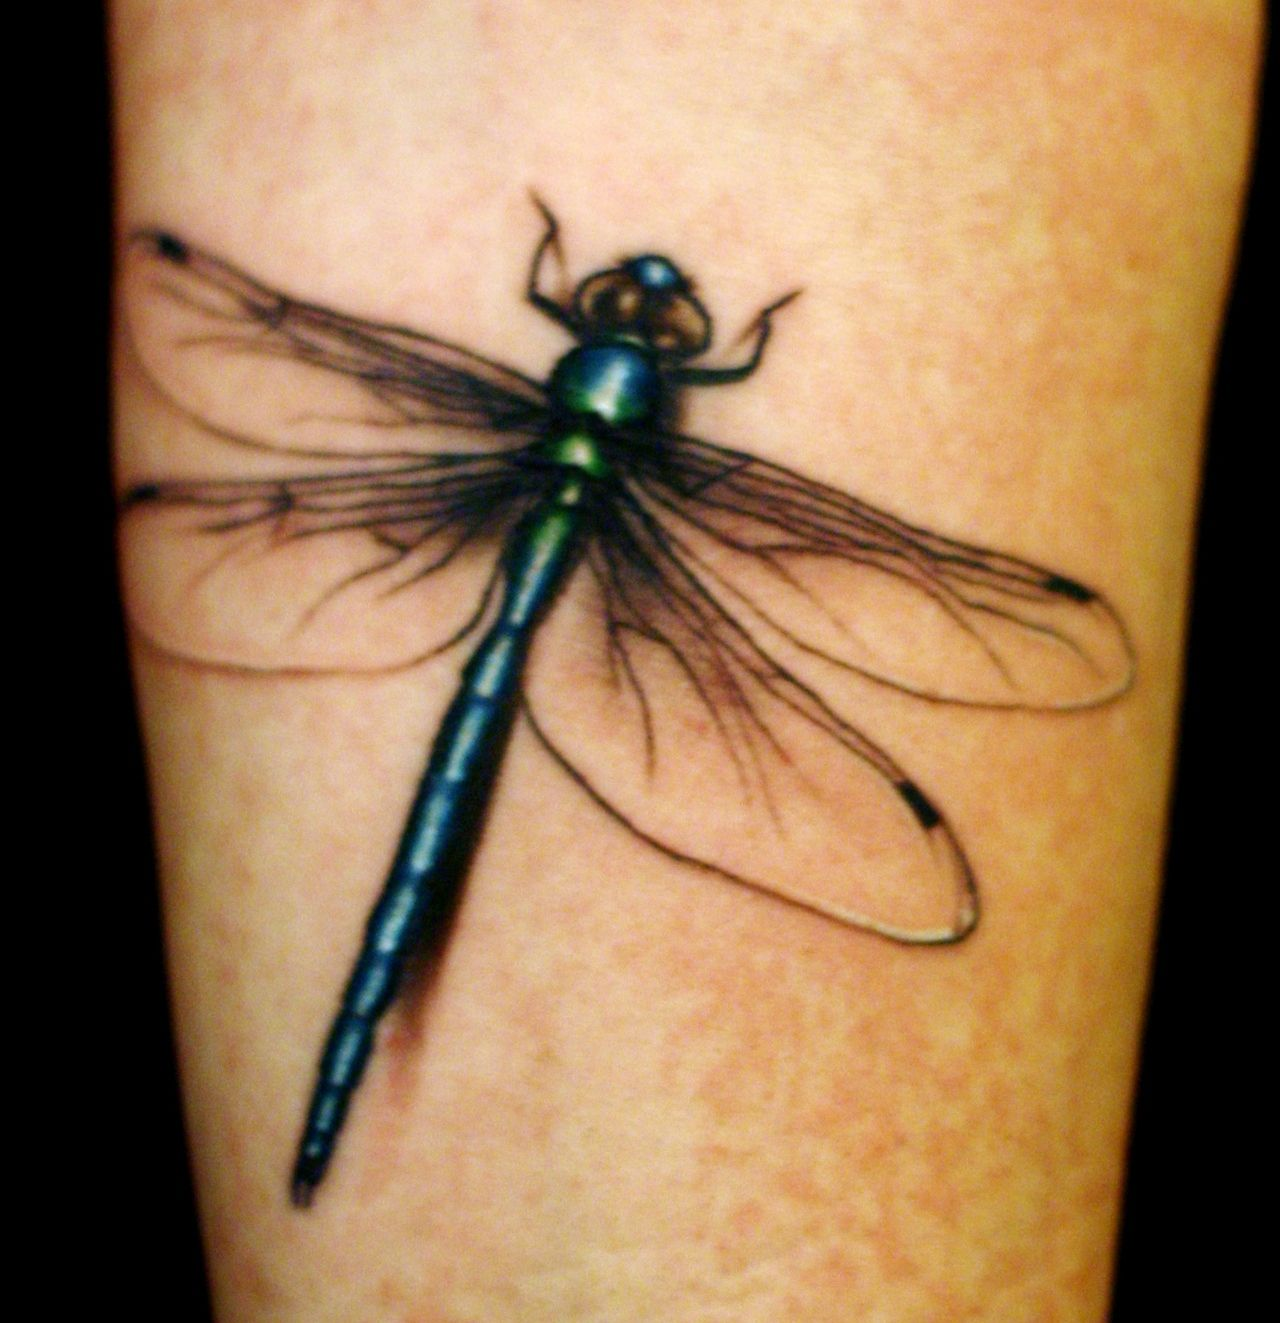 ec625dd31 30 Sexy Dragonfly Tattoos Ideas for Men and Women | Tattoo's ...